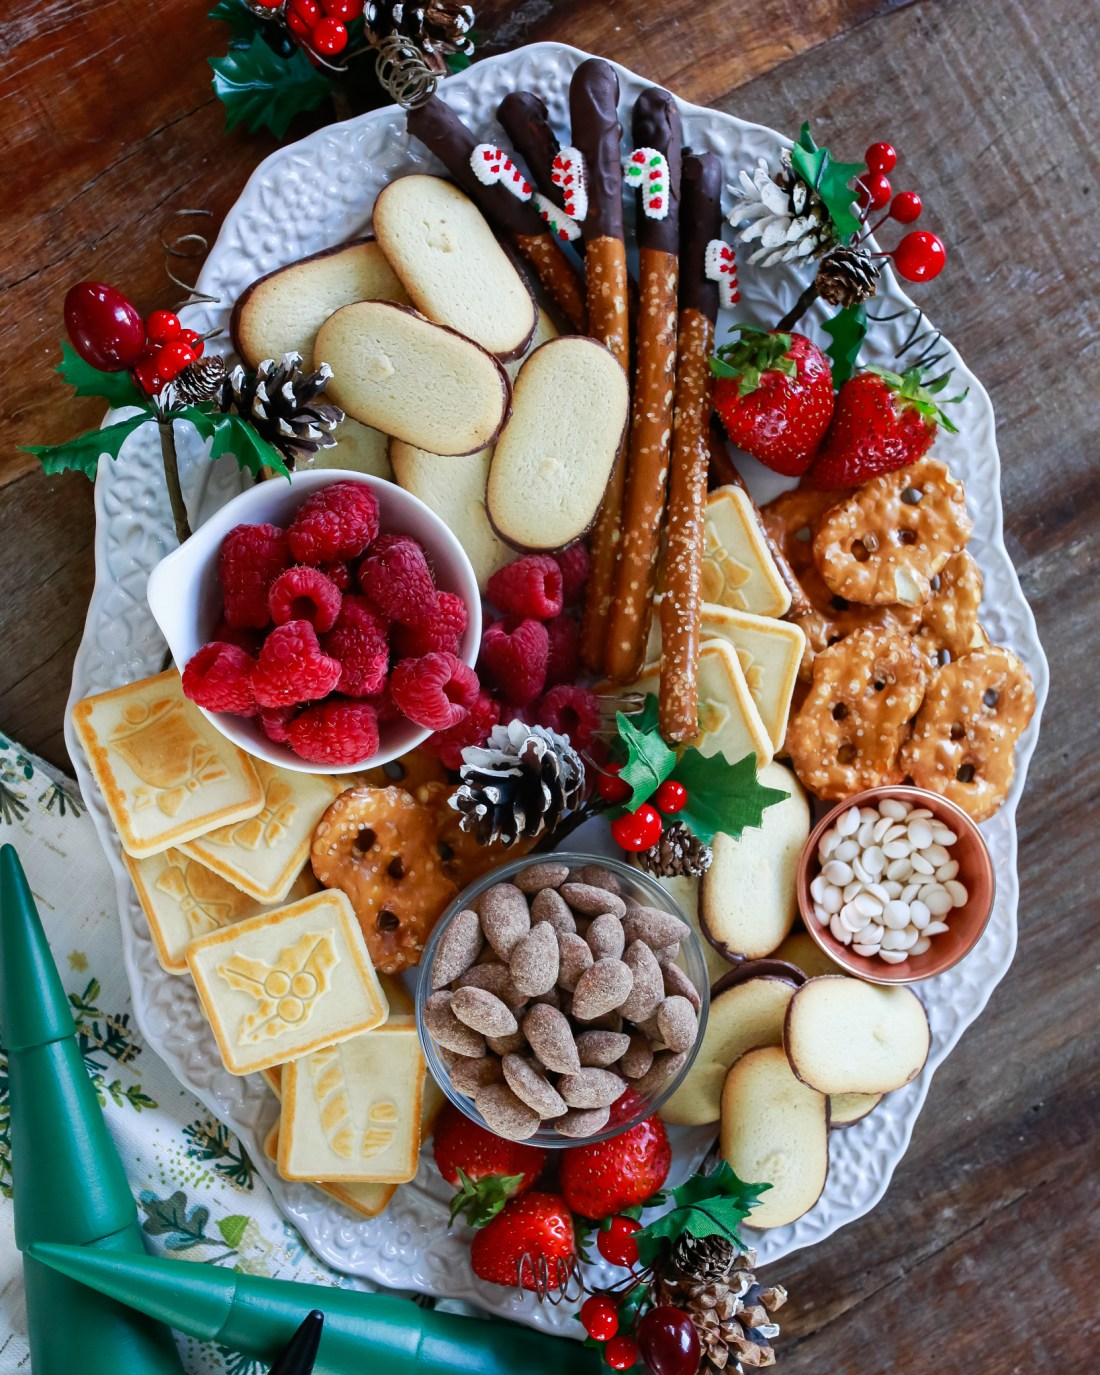 "The ultimate holiday ""charcuterie"" treat board. All good things combined to make one simple delightful tray of holiday cheer."